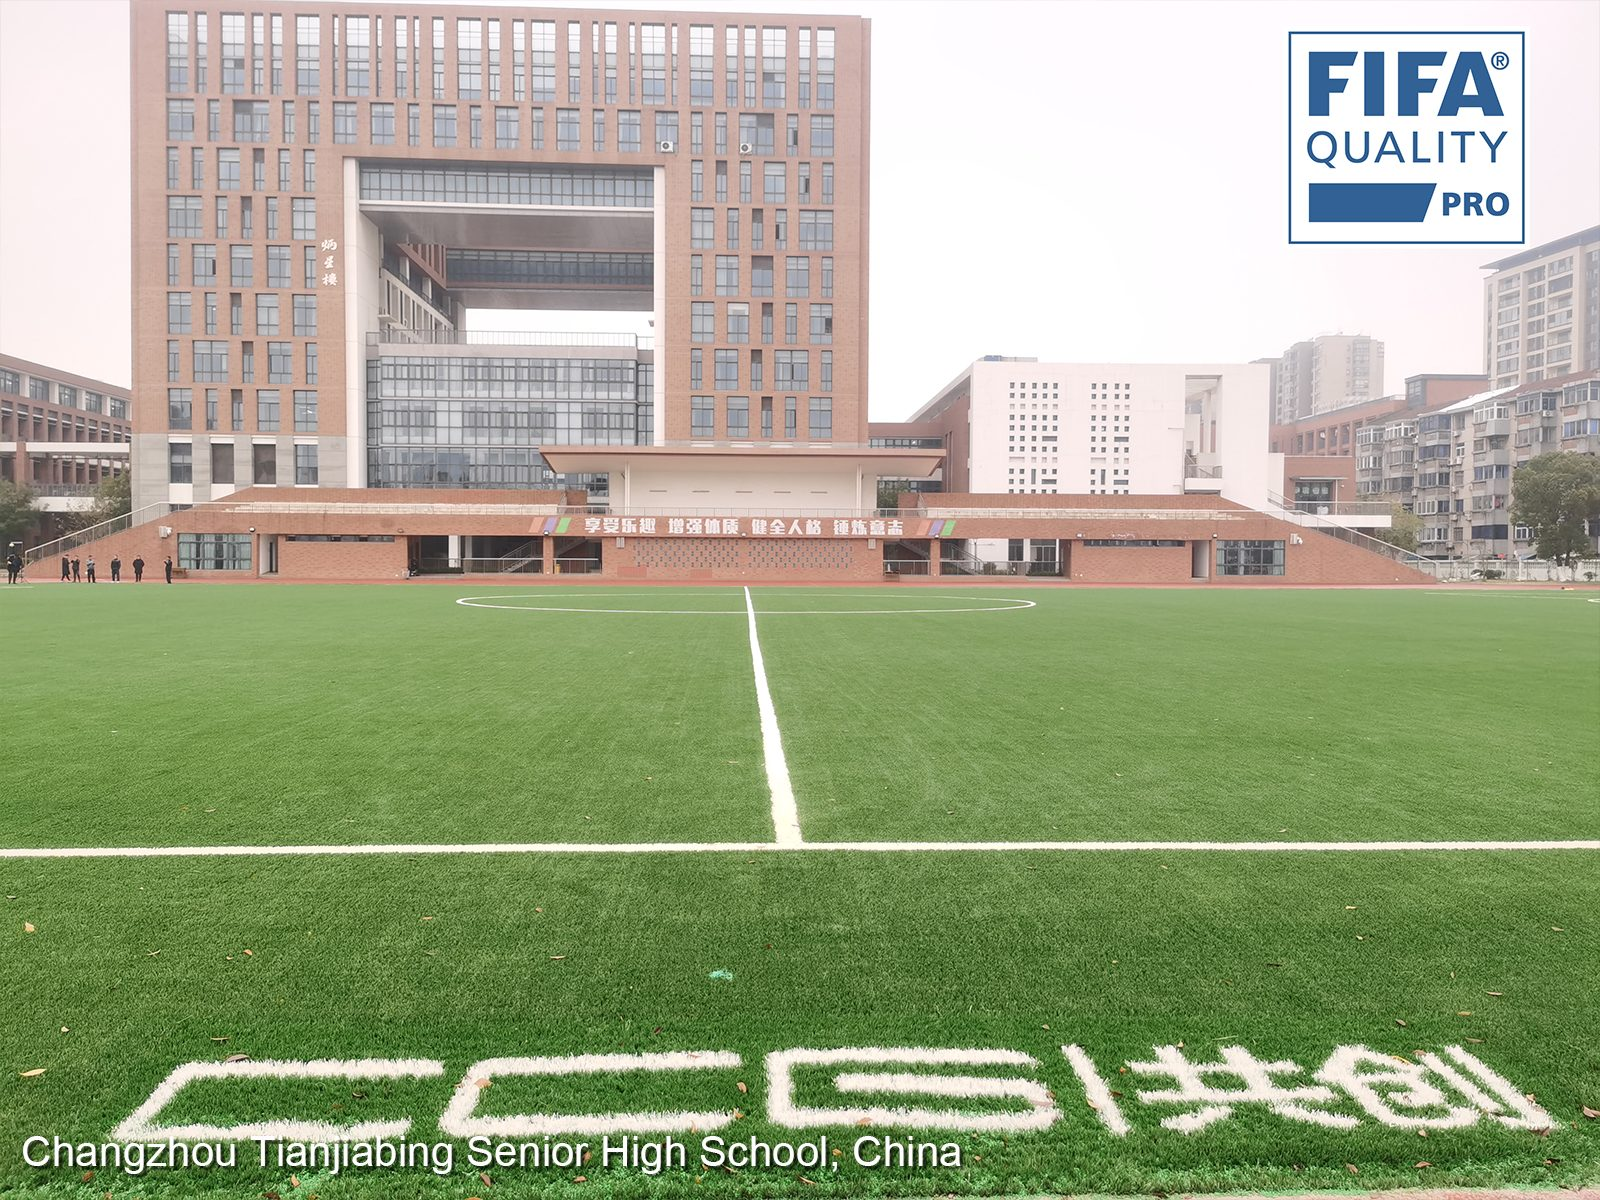 CCGrass, football pitch, China, First FIFA Quality Pro Field